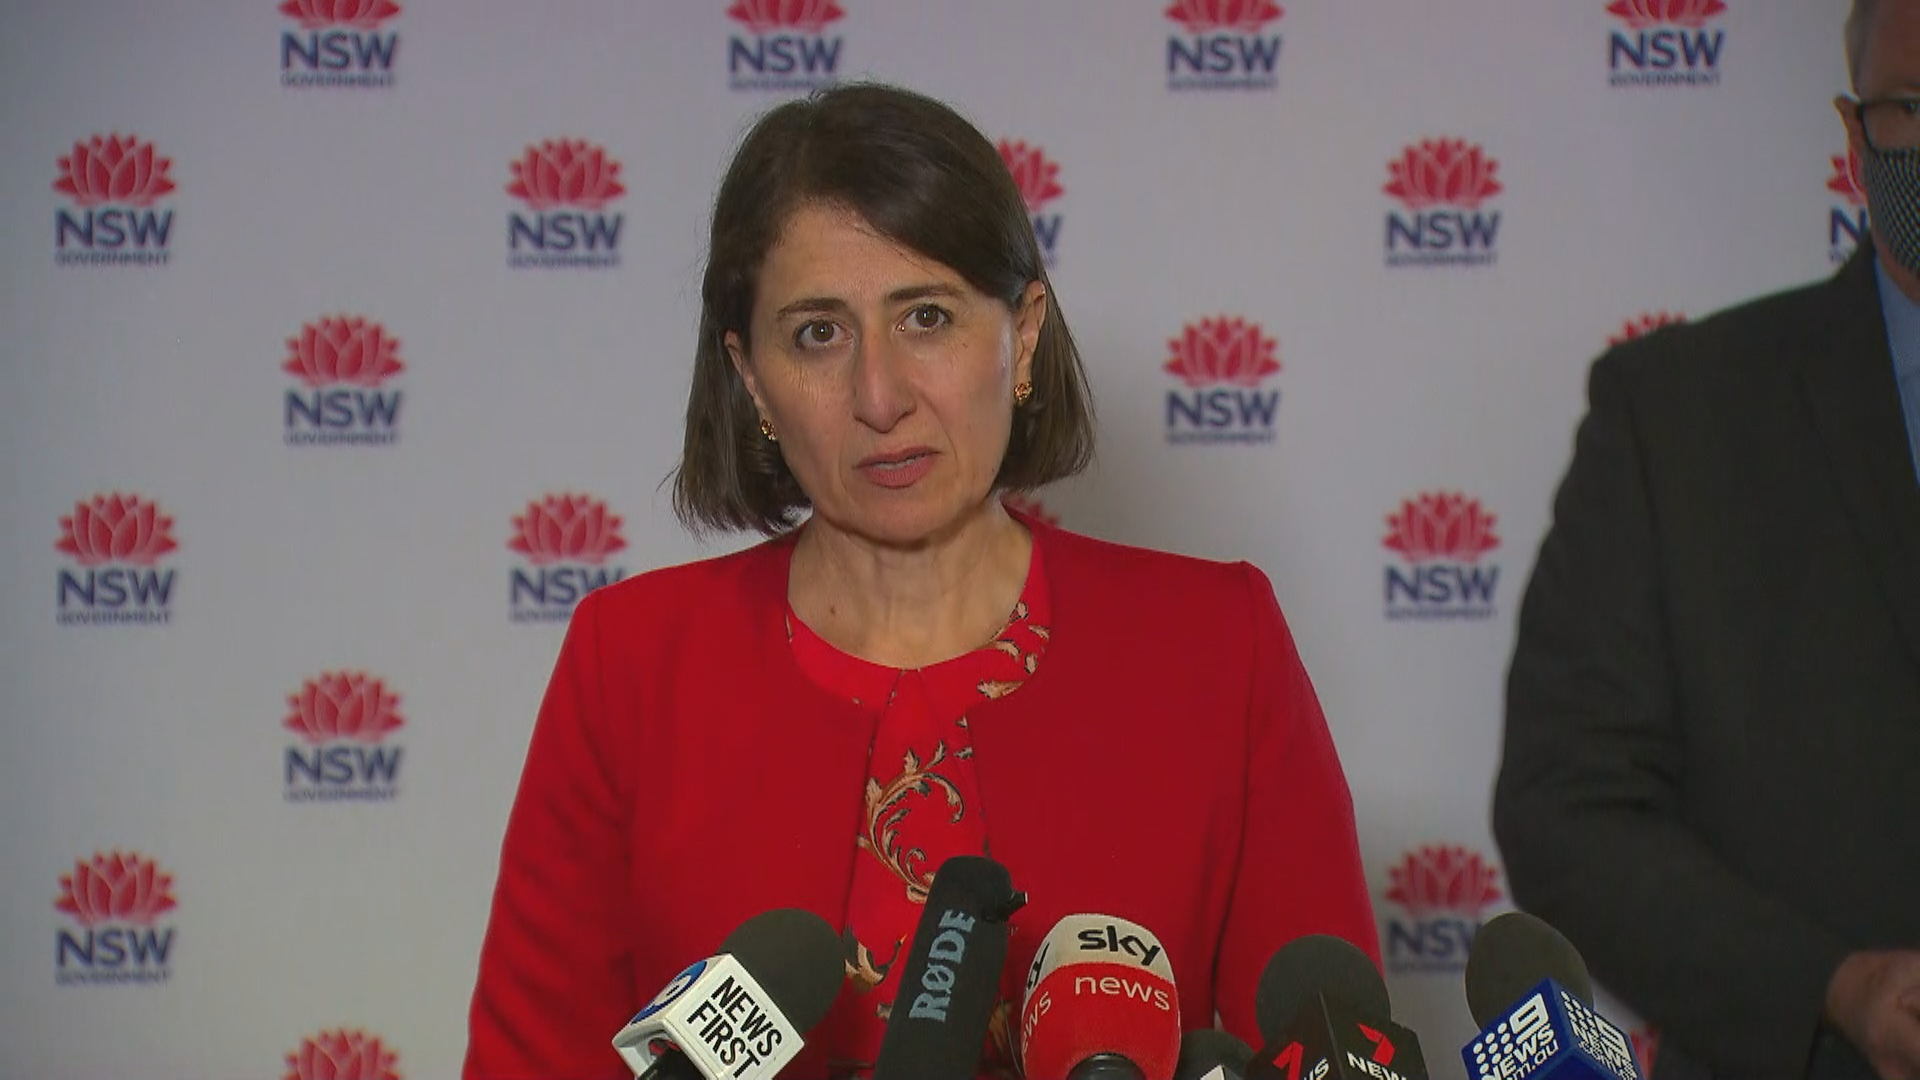 Restrictions to ease in NSW from 29 January